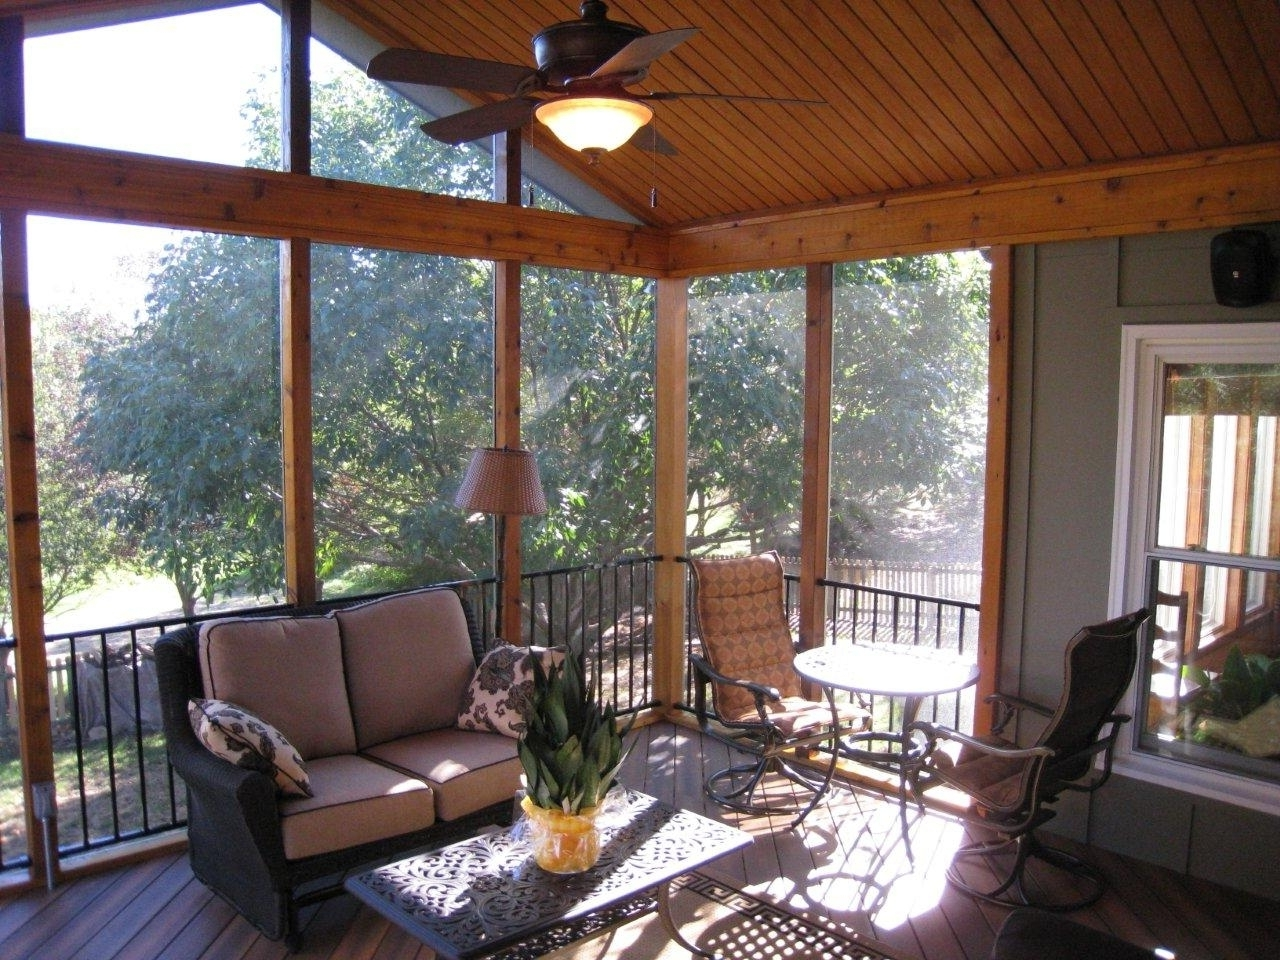 Fashionable Screen Porch Ceiling Fans With Regard To Outdoor Ceiling Fans For Screened Porches (View 14 of 20)